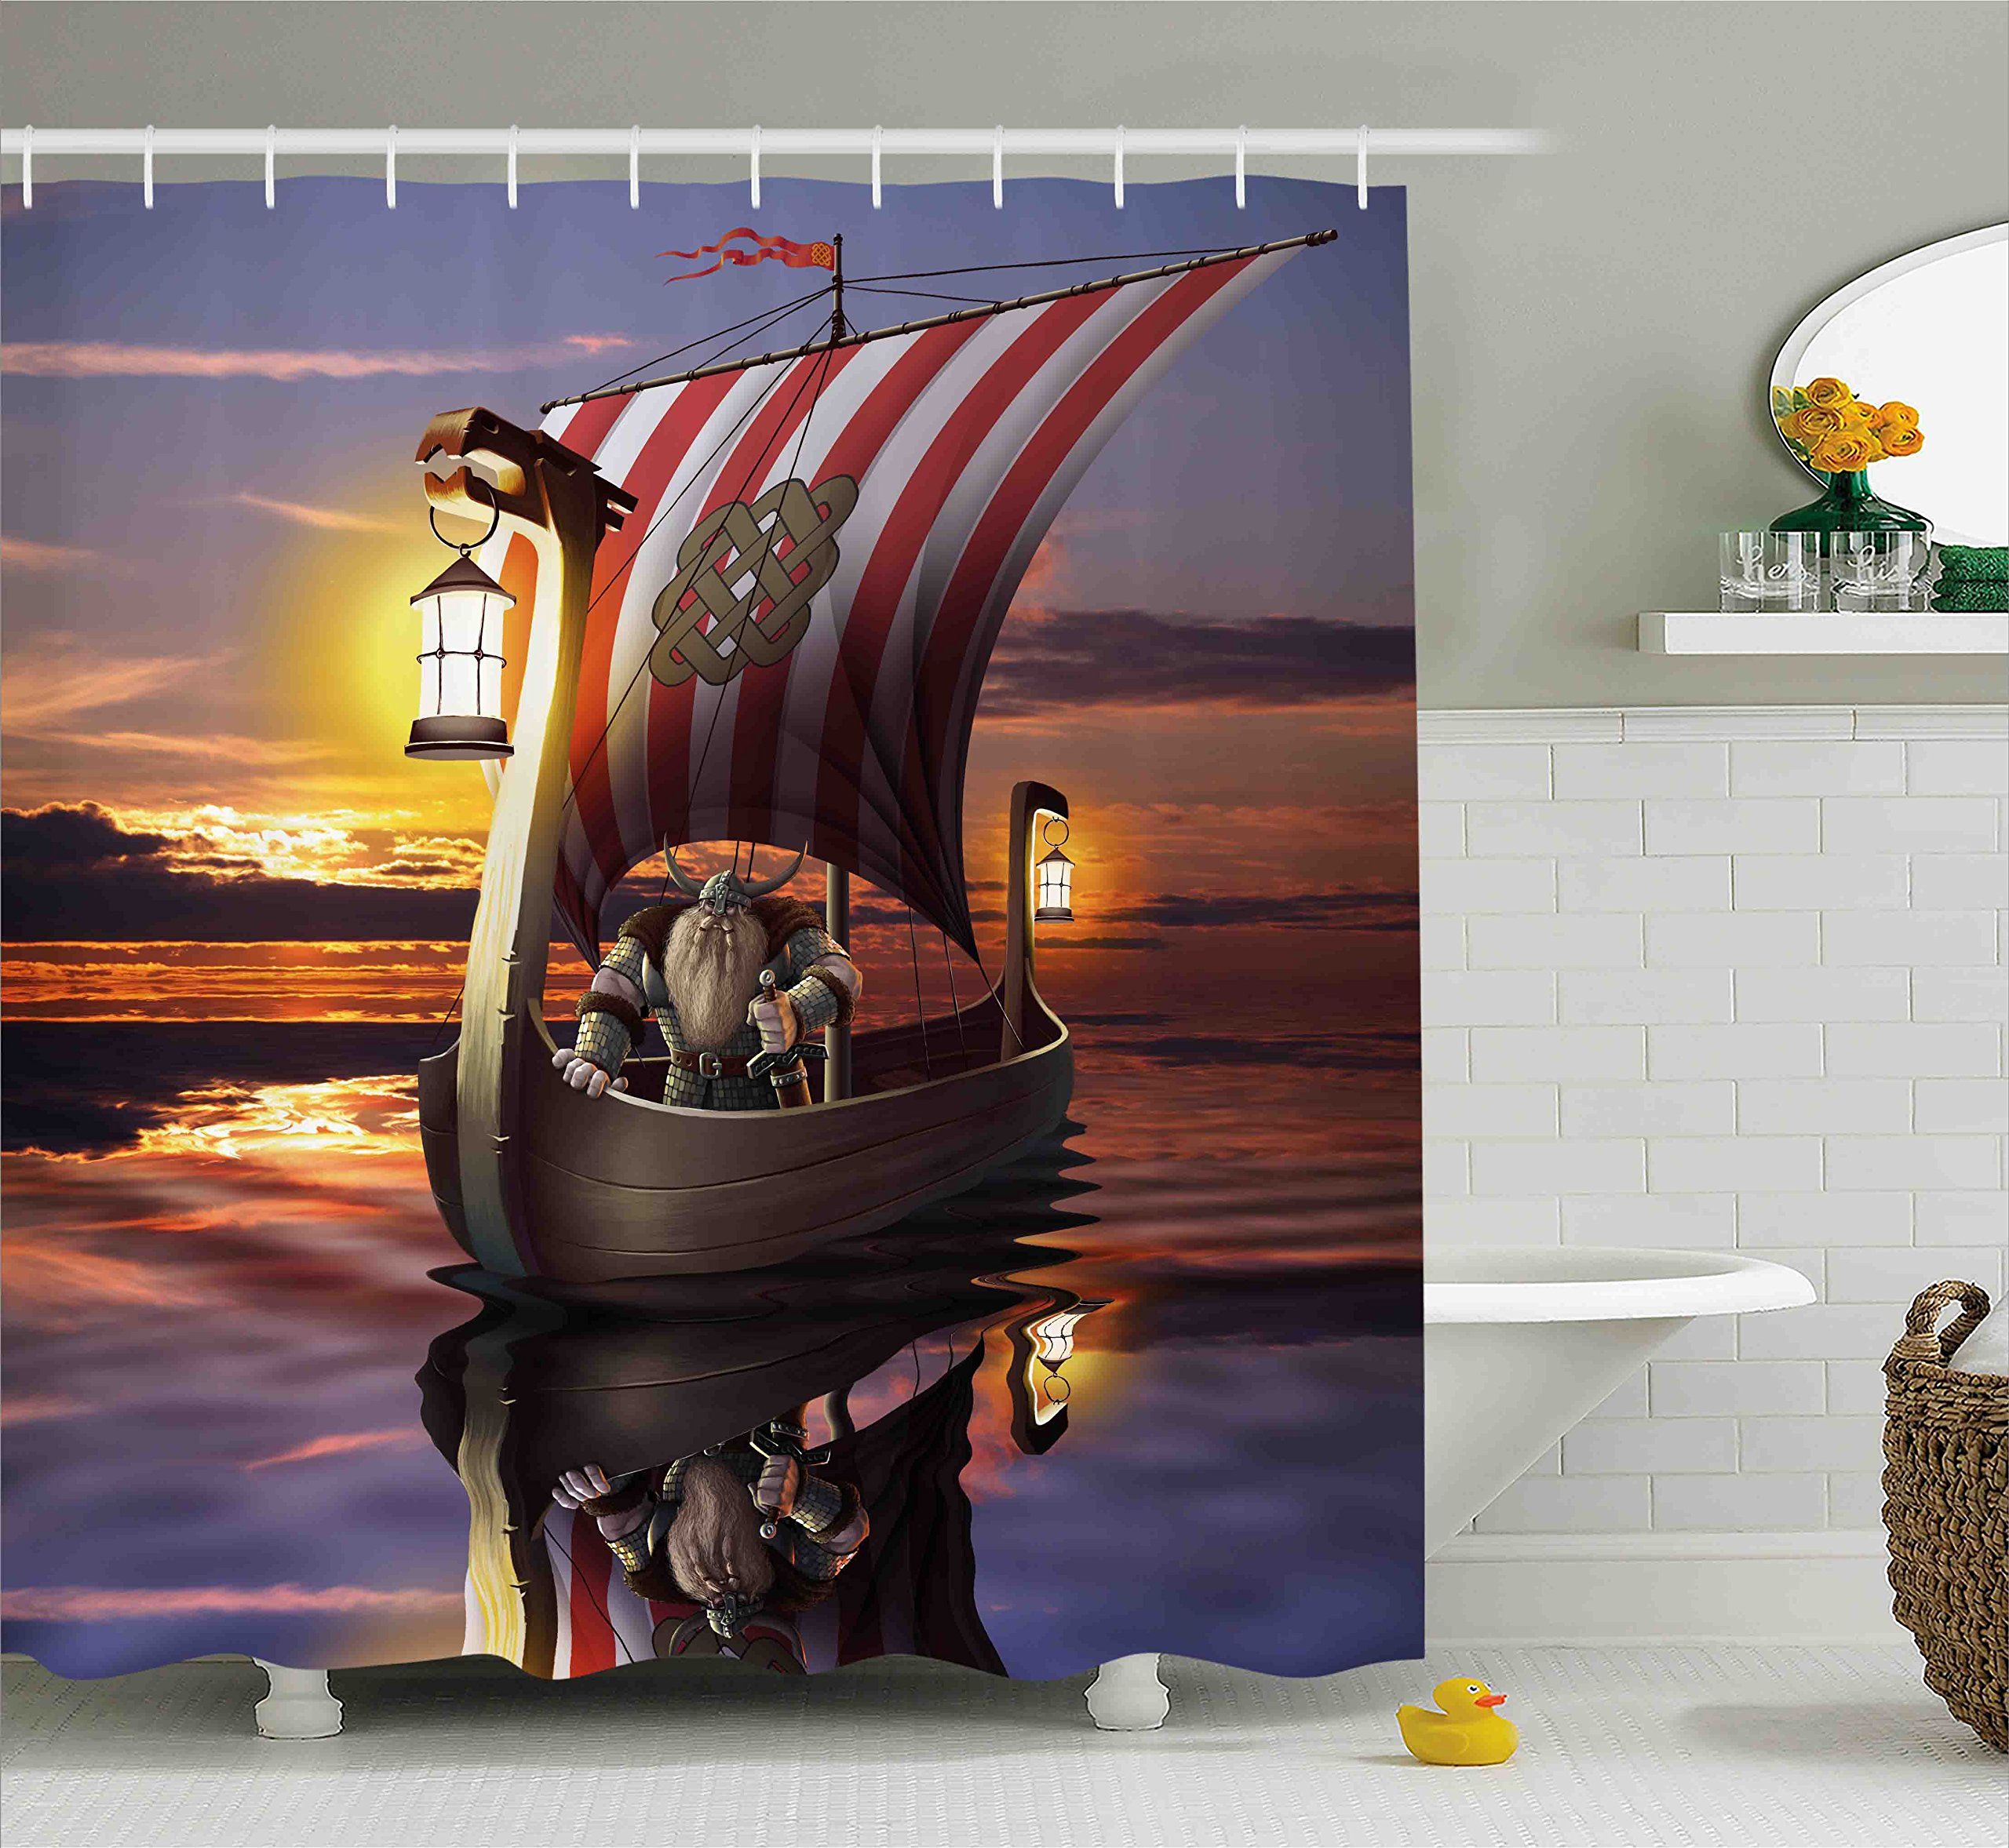 Ambesonne Viking Shower Curtain, A Warrior in a Ship Twilight Barbarian Nordic Scandinavian Culture Artwork Print, Fabric Bathroom Decor Set with Hooks, 70 inches, Multicolor